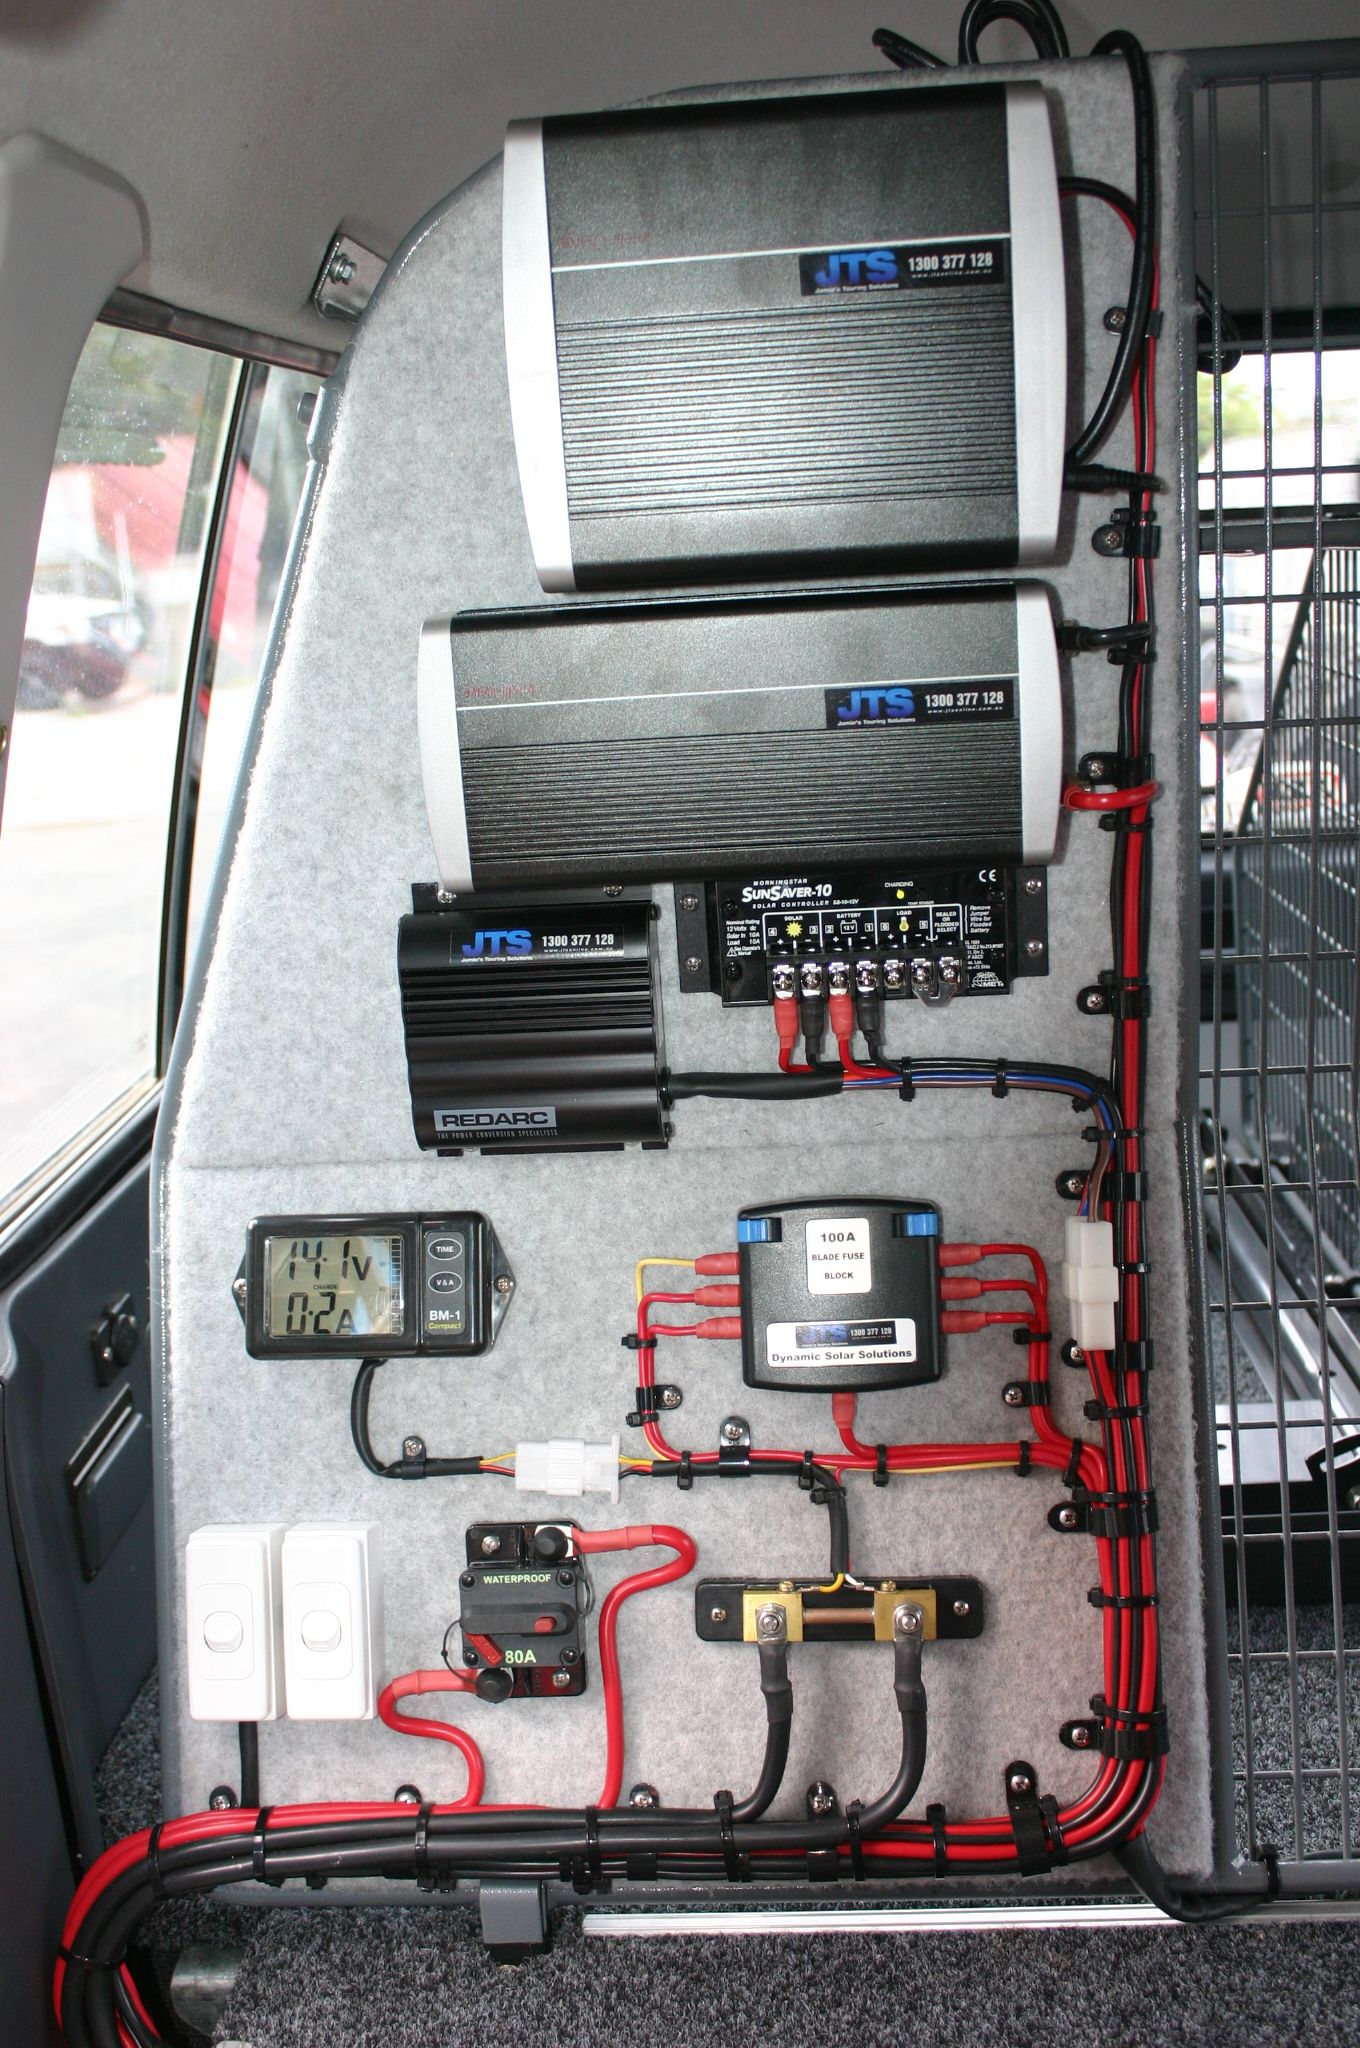 medium resolution of truck camper electrical systems more details can be found by clicking on the image campingtips